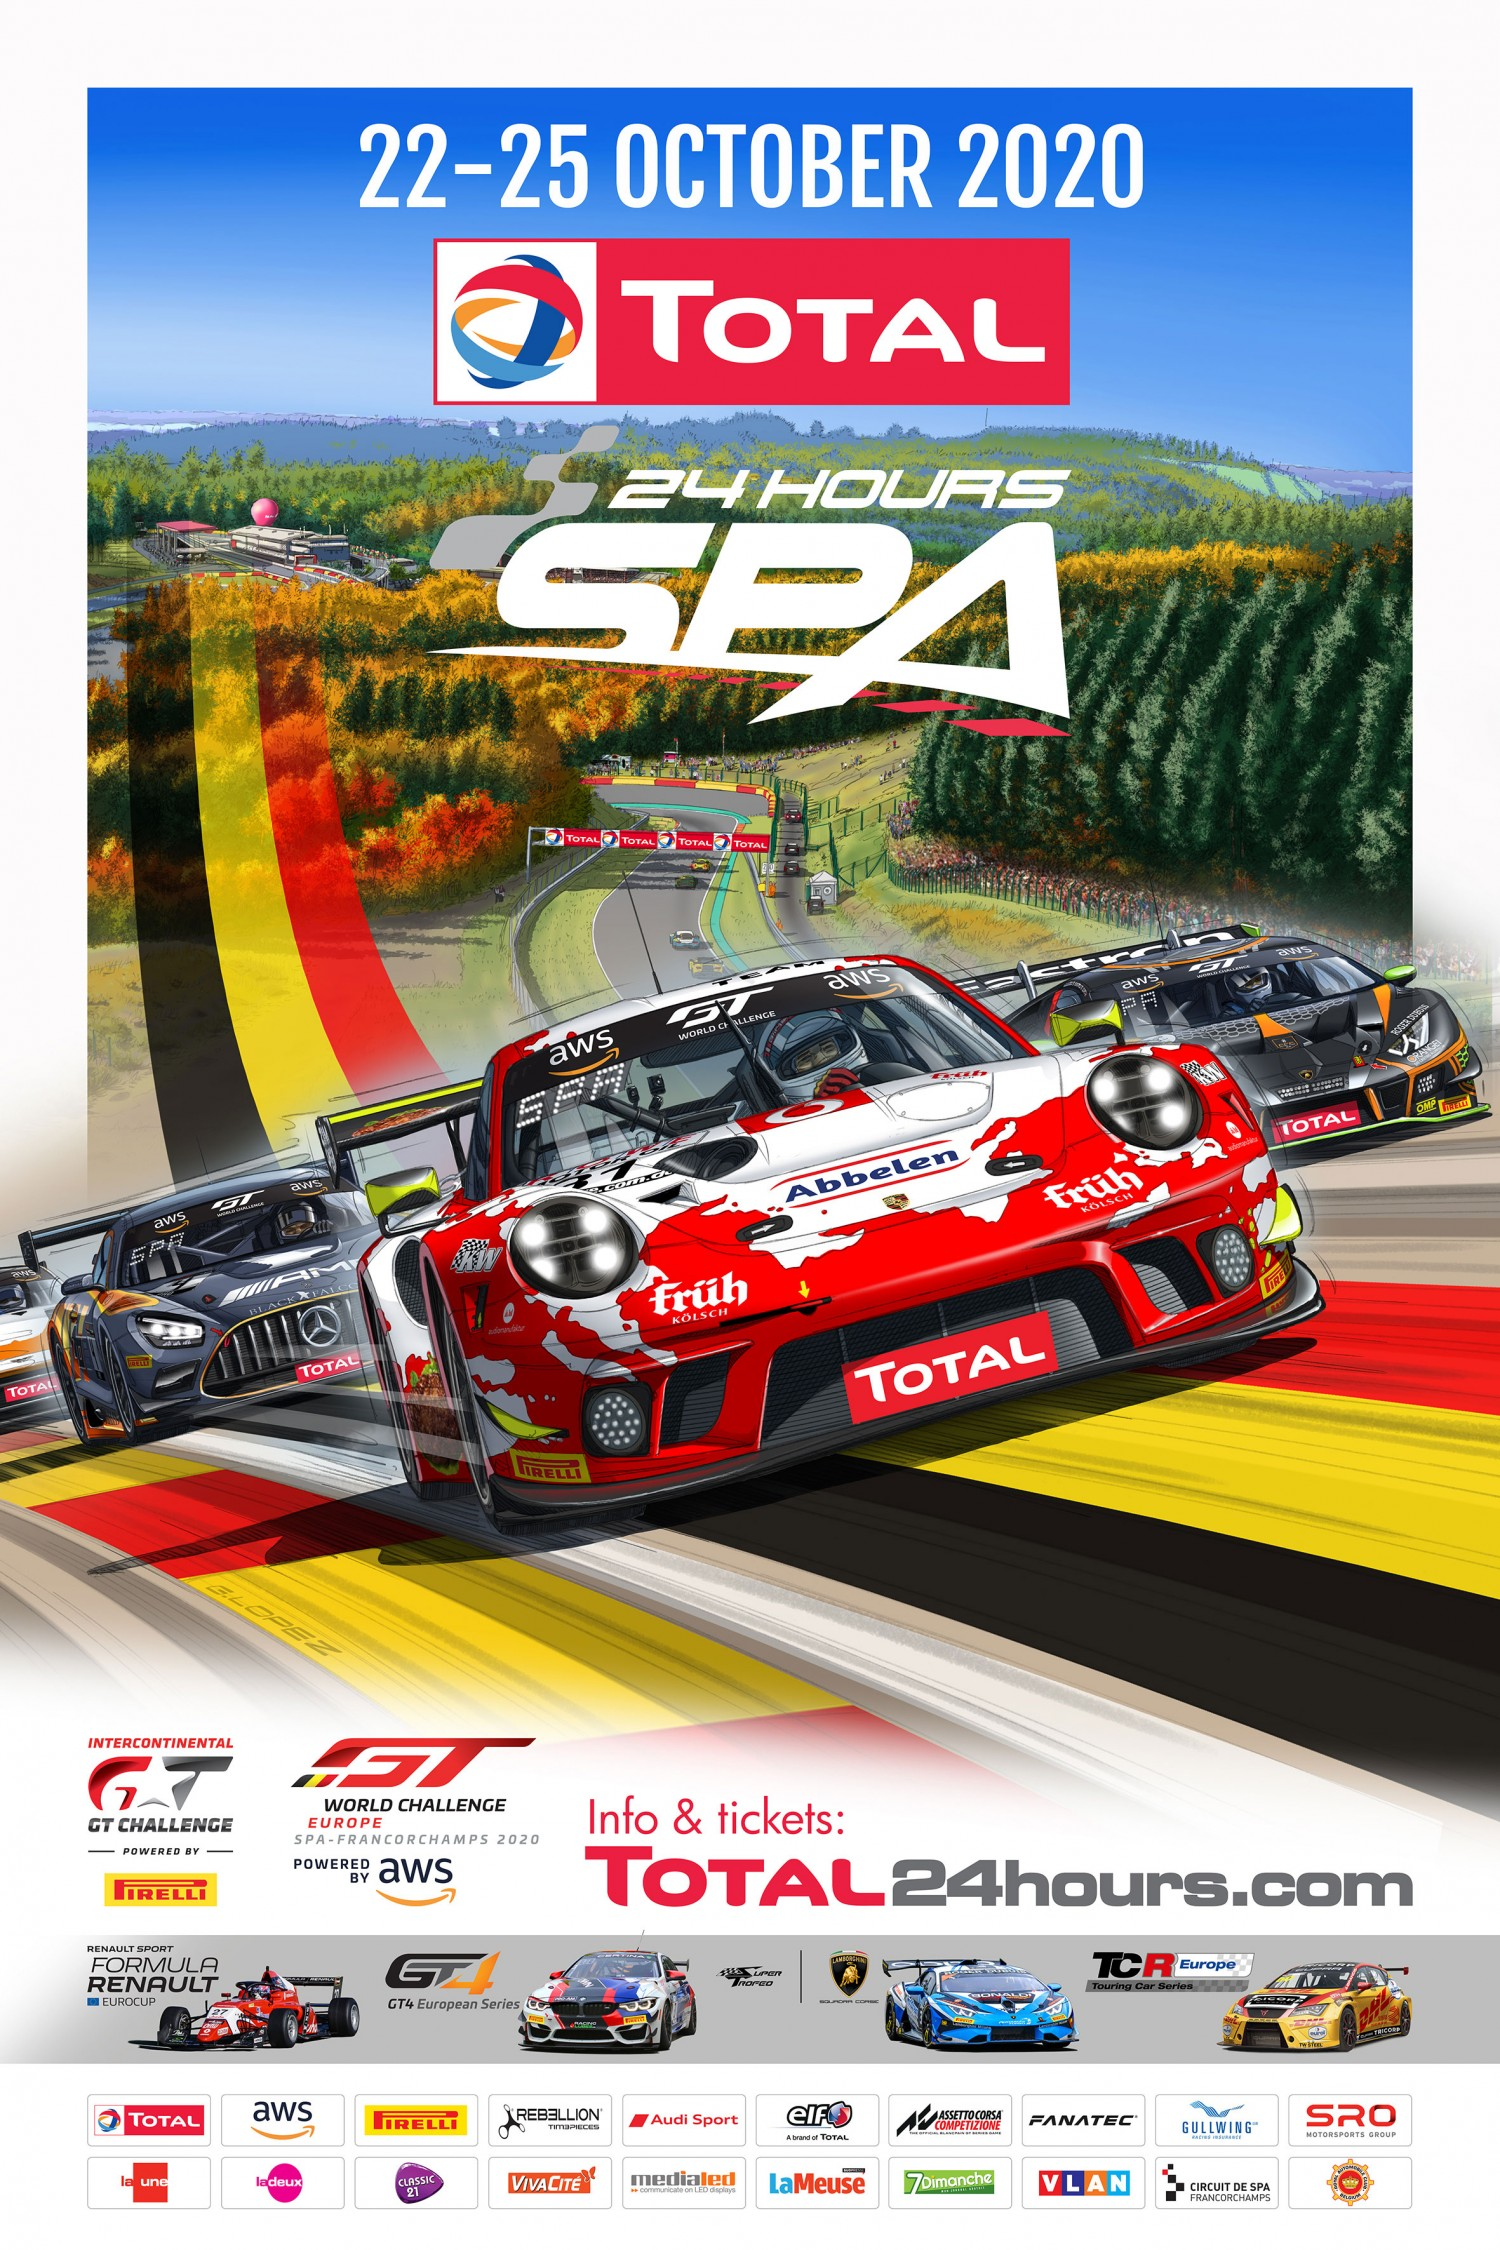 Official race poster adds vibrant autumn colours to Total 24 Hours of Spa build-up